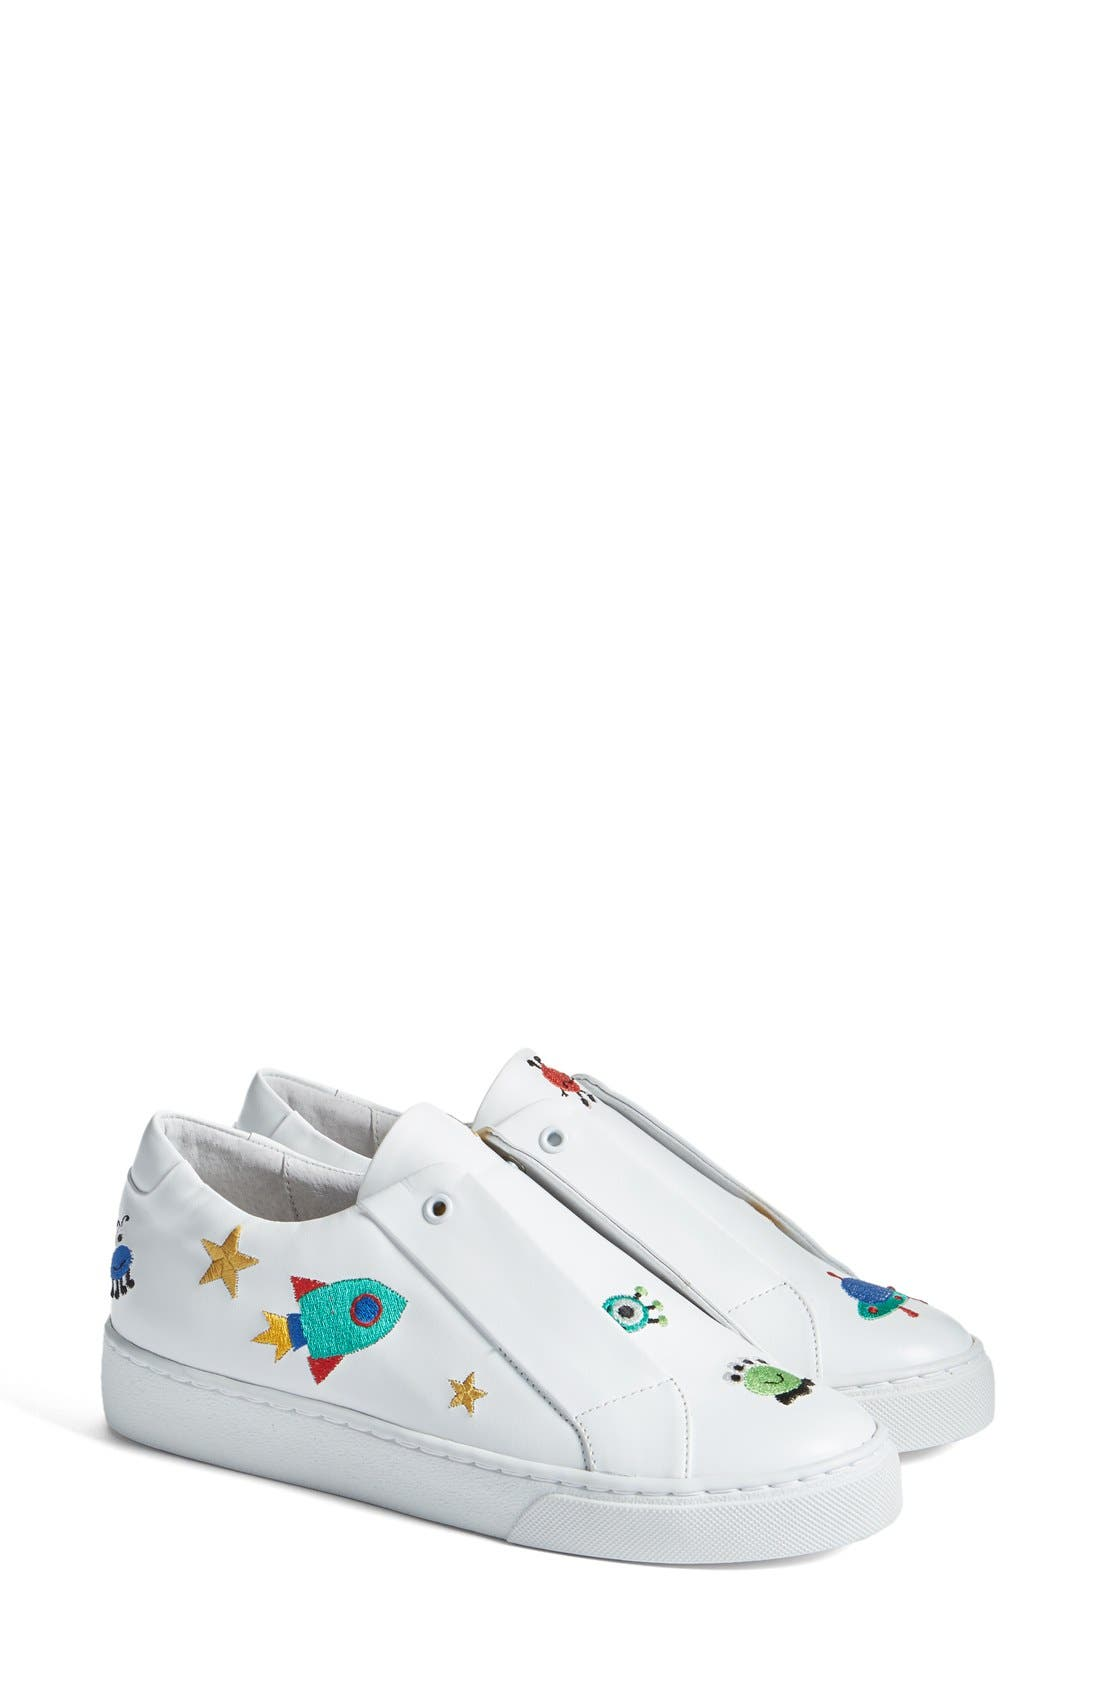 Halley Slip-On Sneaker,                         Main,                         color,